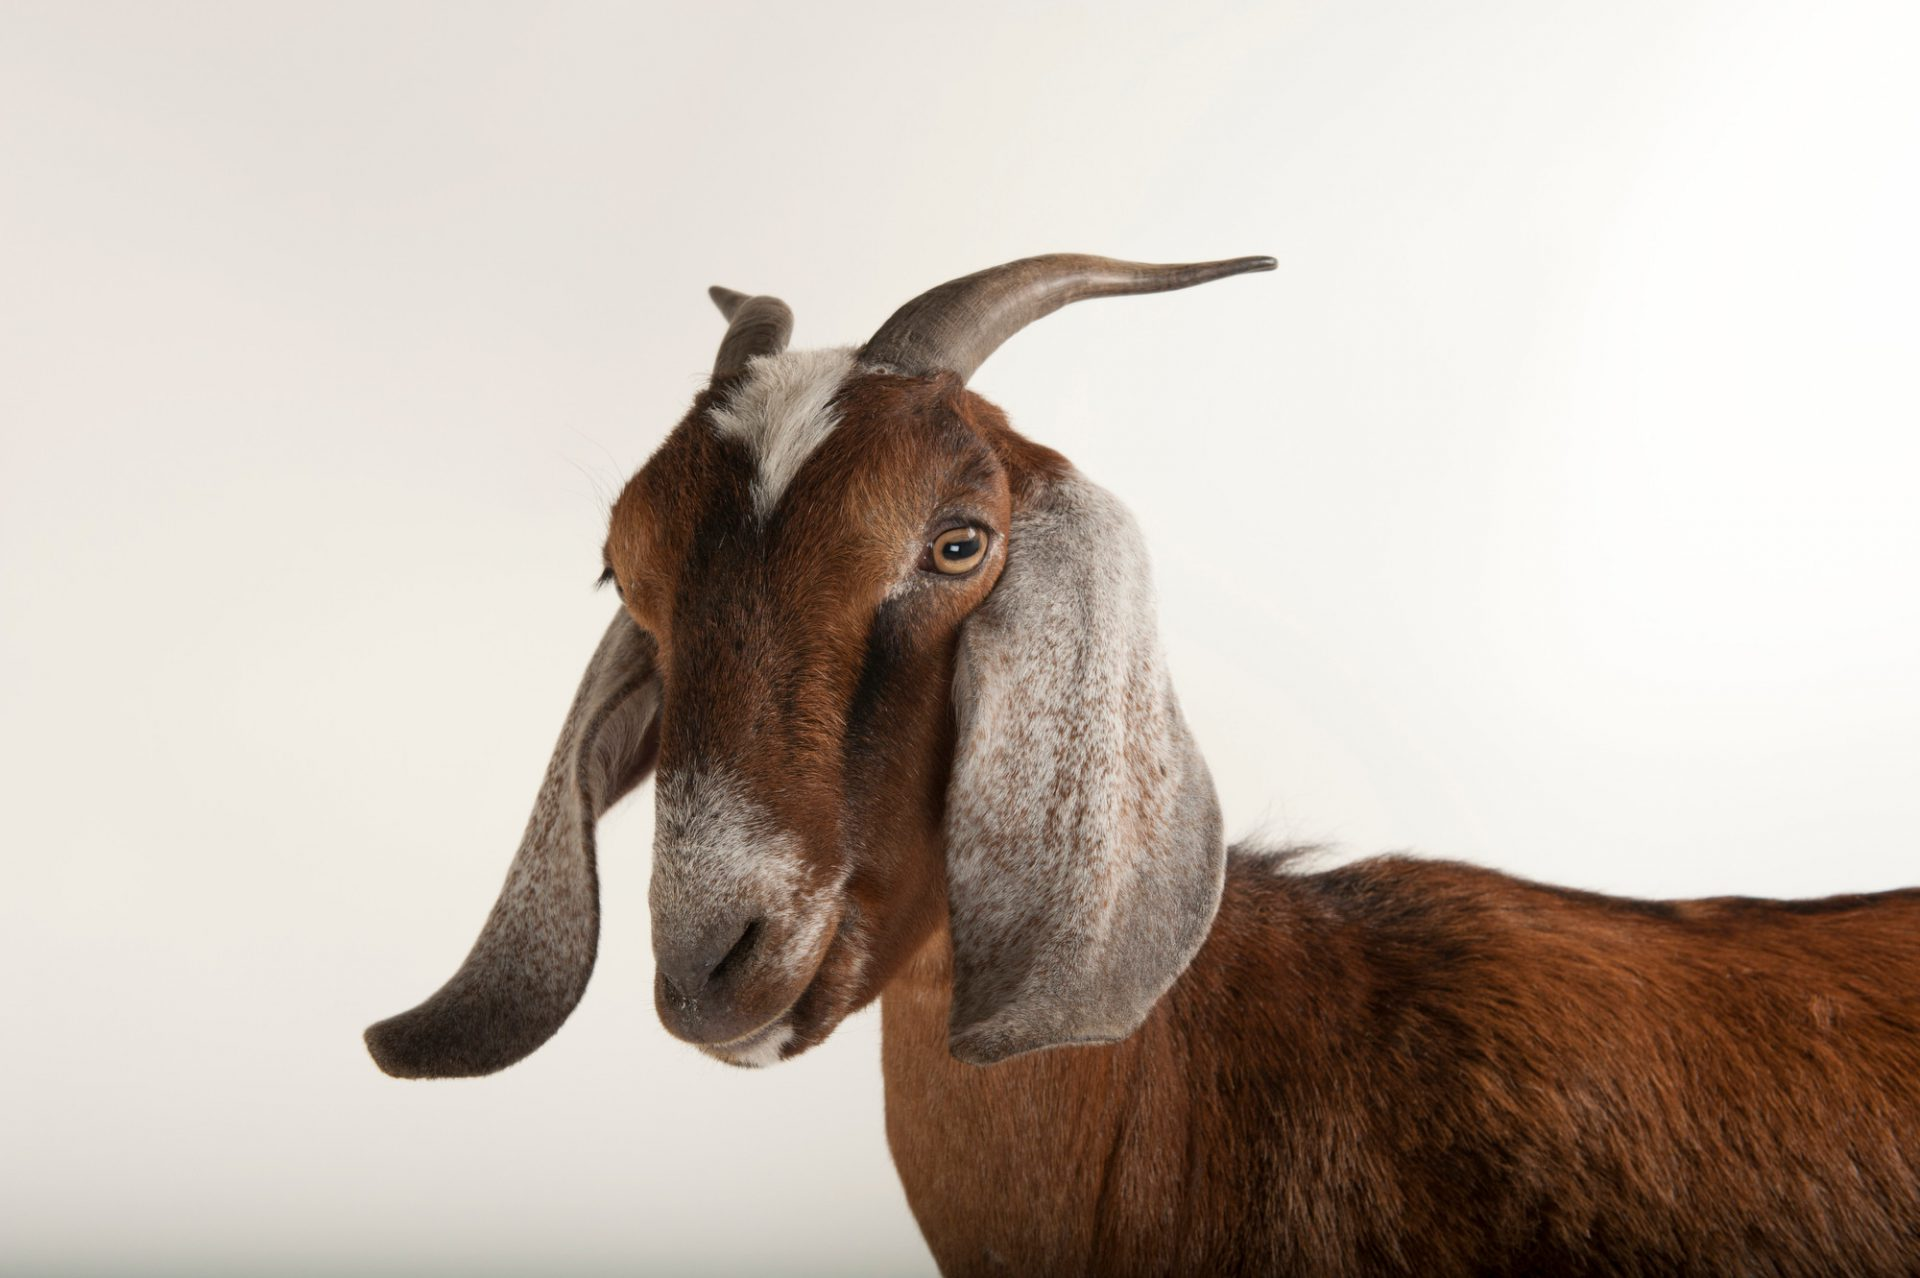 Photo: Nubian goat at the Lincoln Children's Zoo.